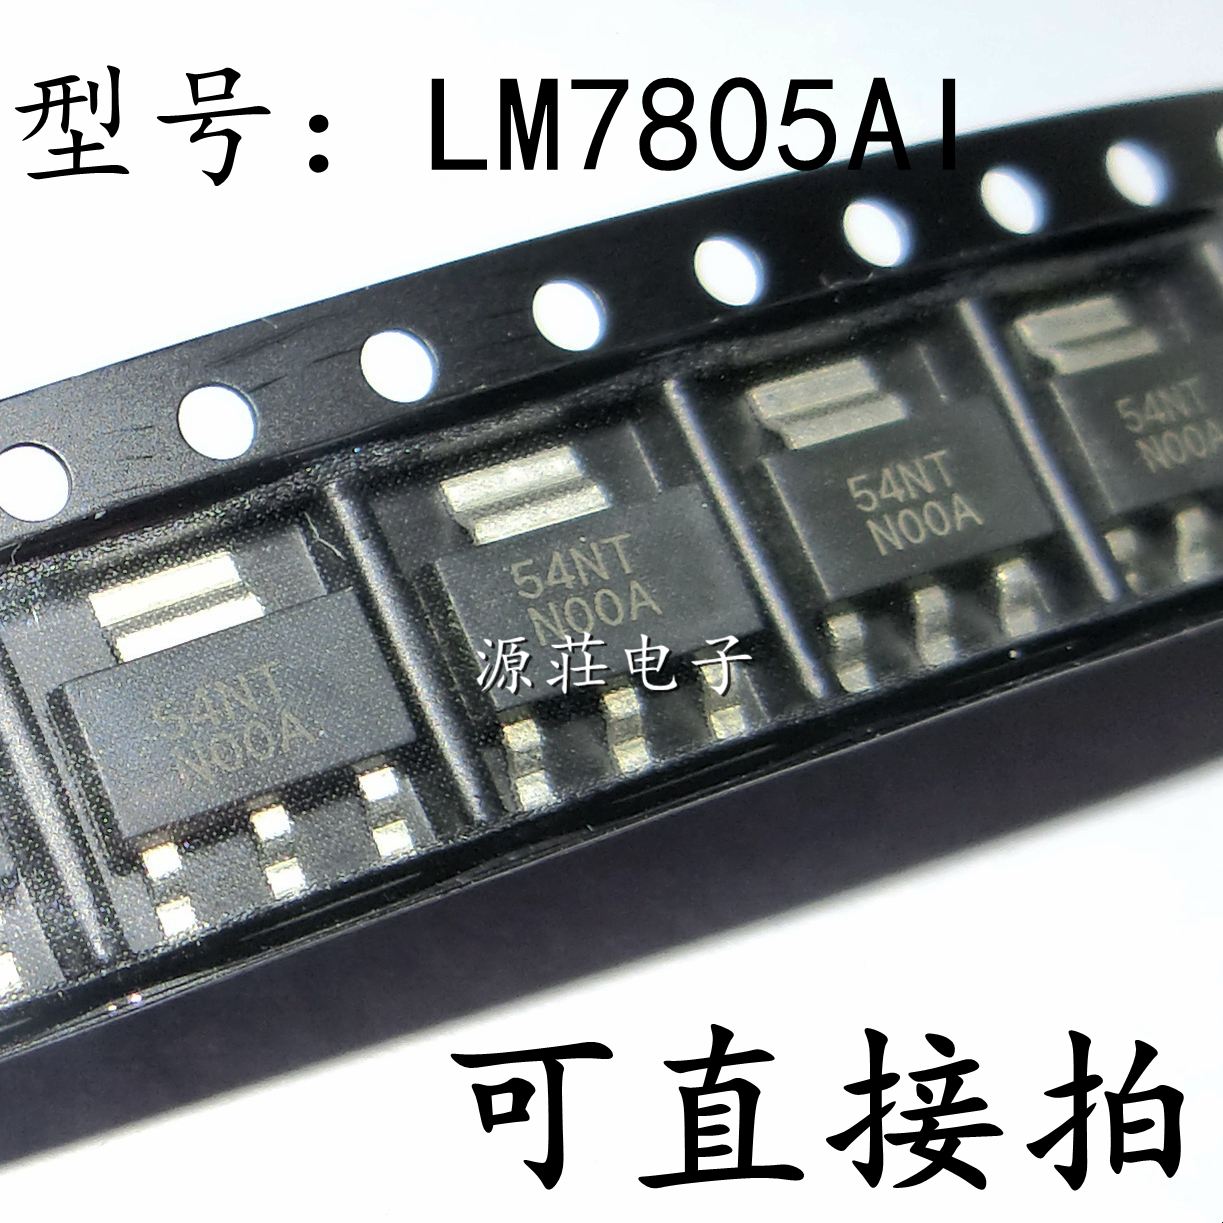 Smd Lm7805 Lm7805ai Screen N00a Voltage Regulator Triode Sot22 7805 Circuits Google Search